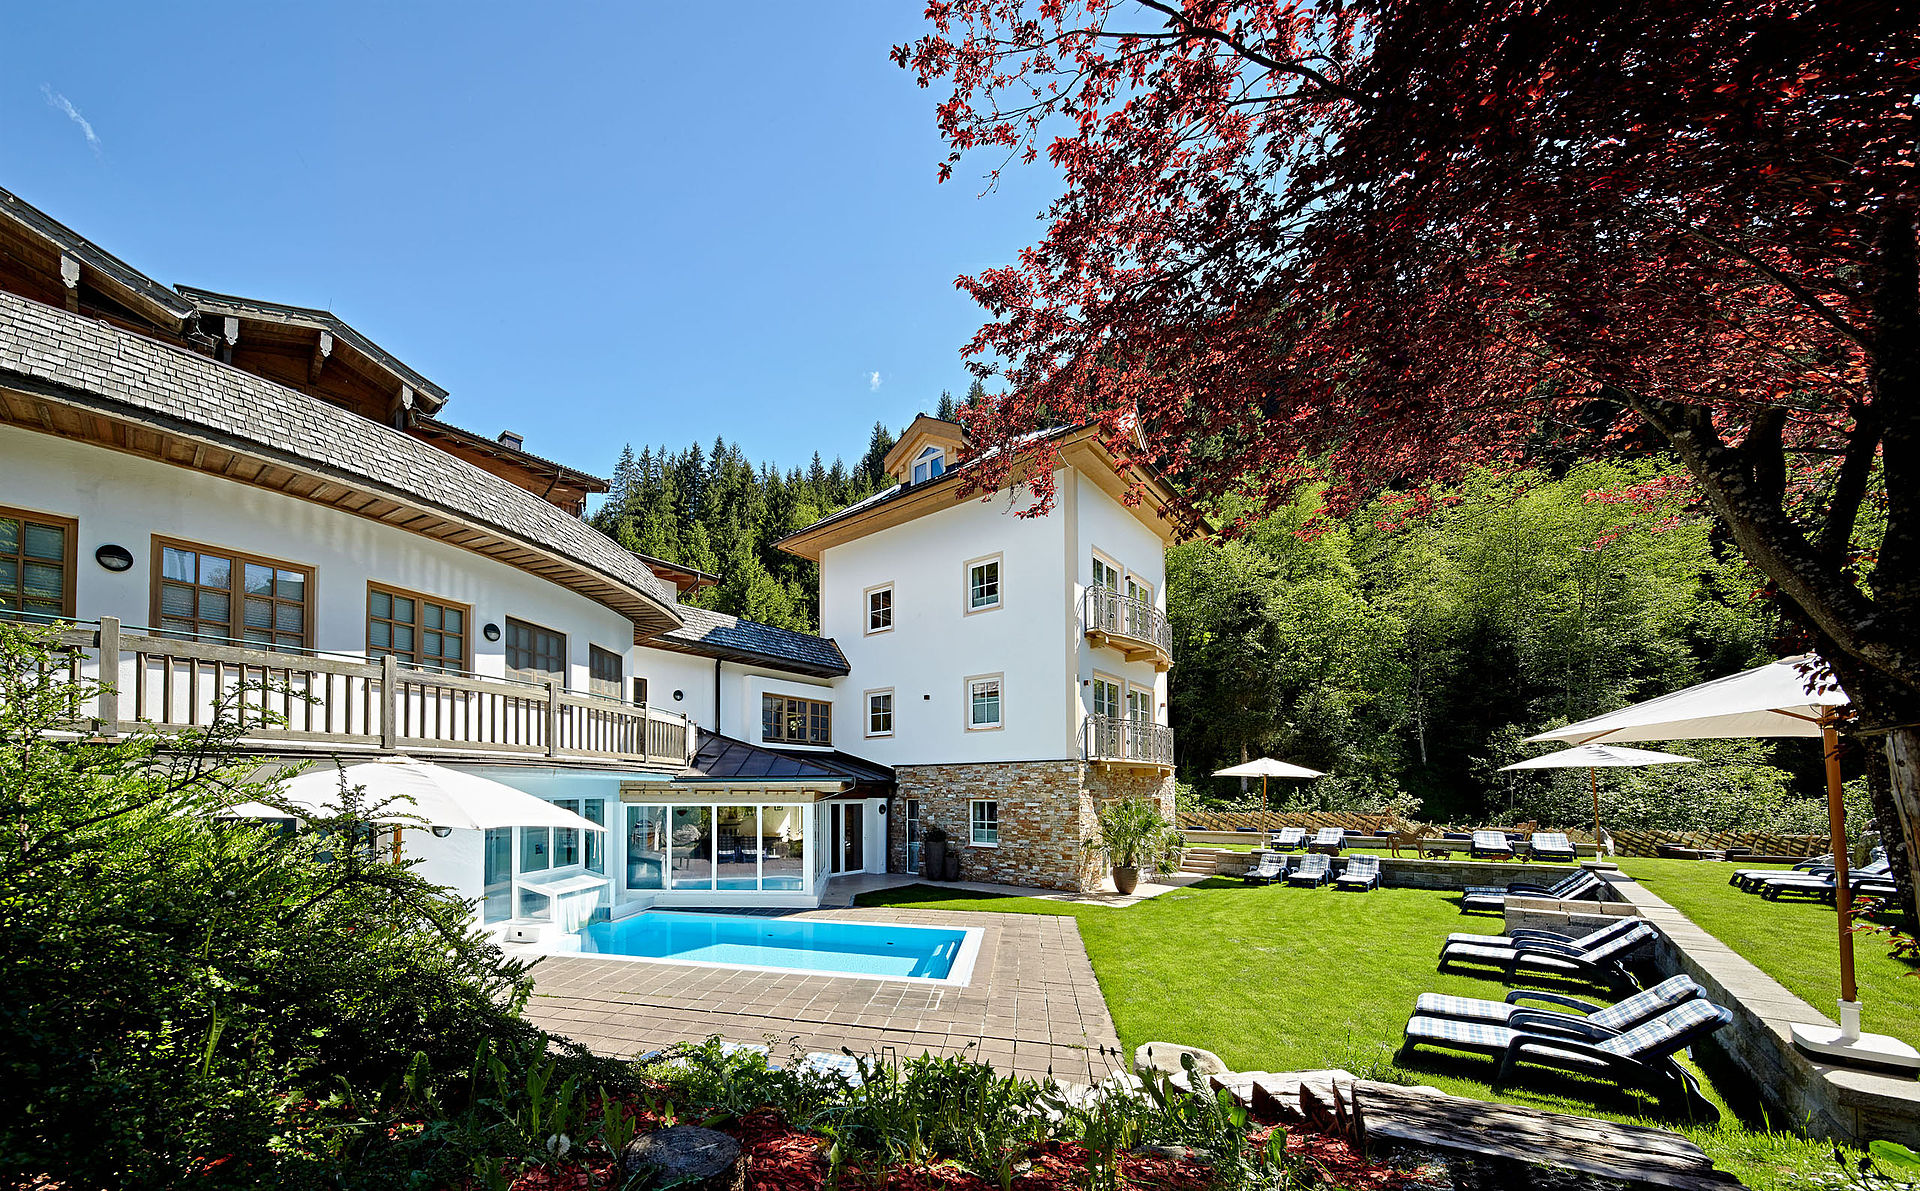 Garten Swimmingpool Outdoor Pool With Spa Garden And Sunbathing Area Habachklause